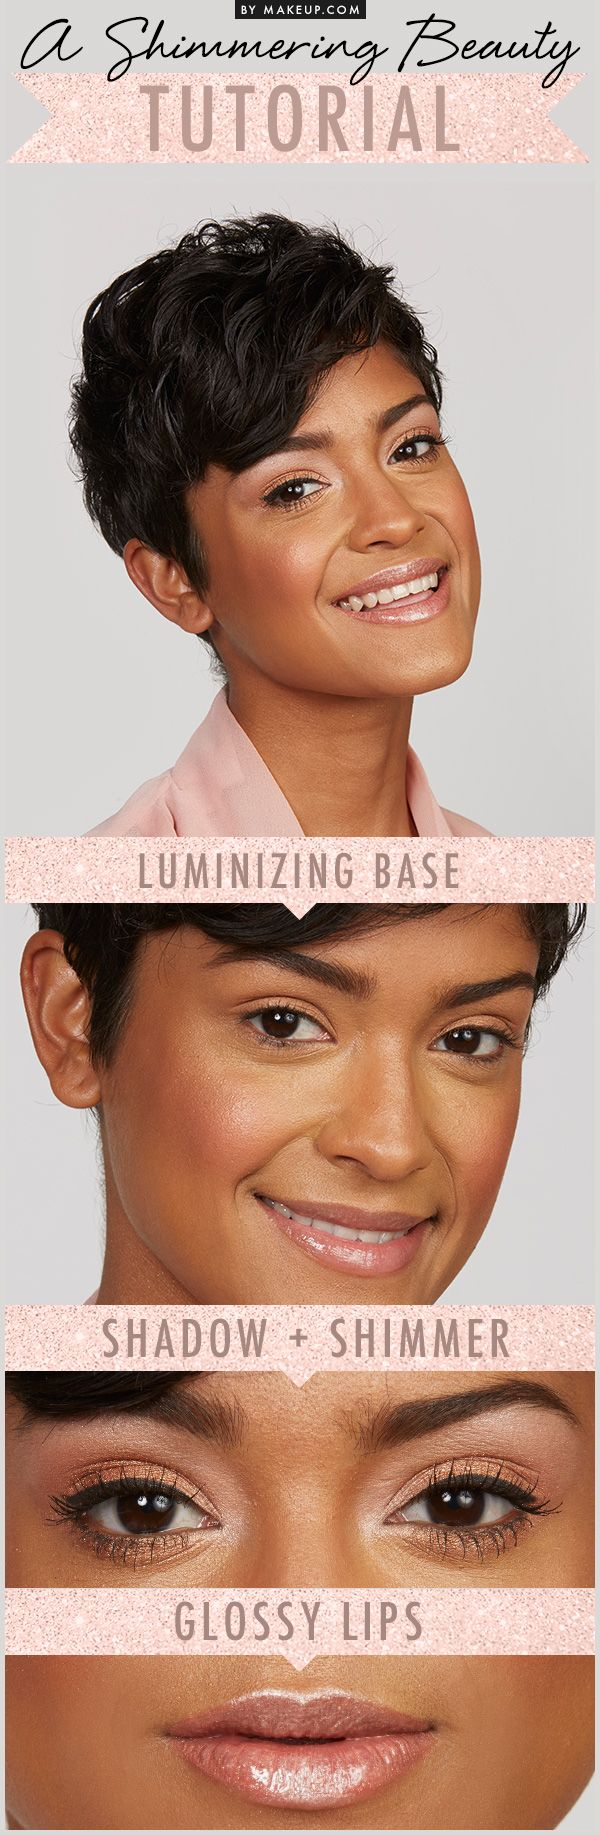 Adding a little shimmer is EASY! These makeup tips will add some shimmer to your skin, eyes and lips and you'll be glowing in no time. See how to get this glamorous look here!